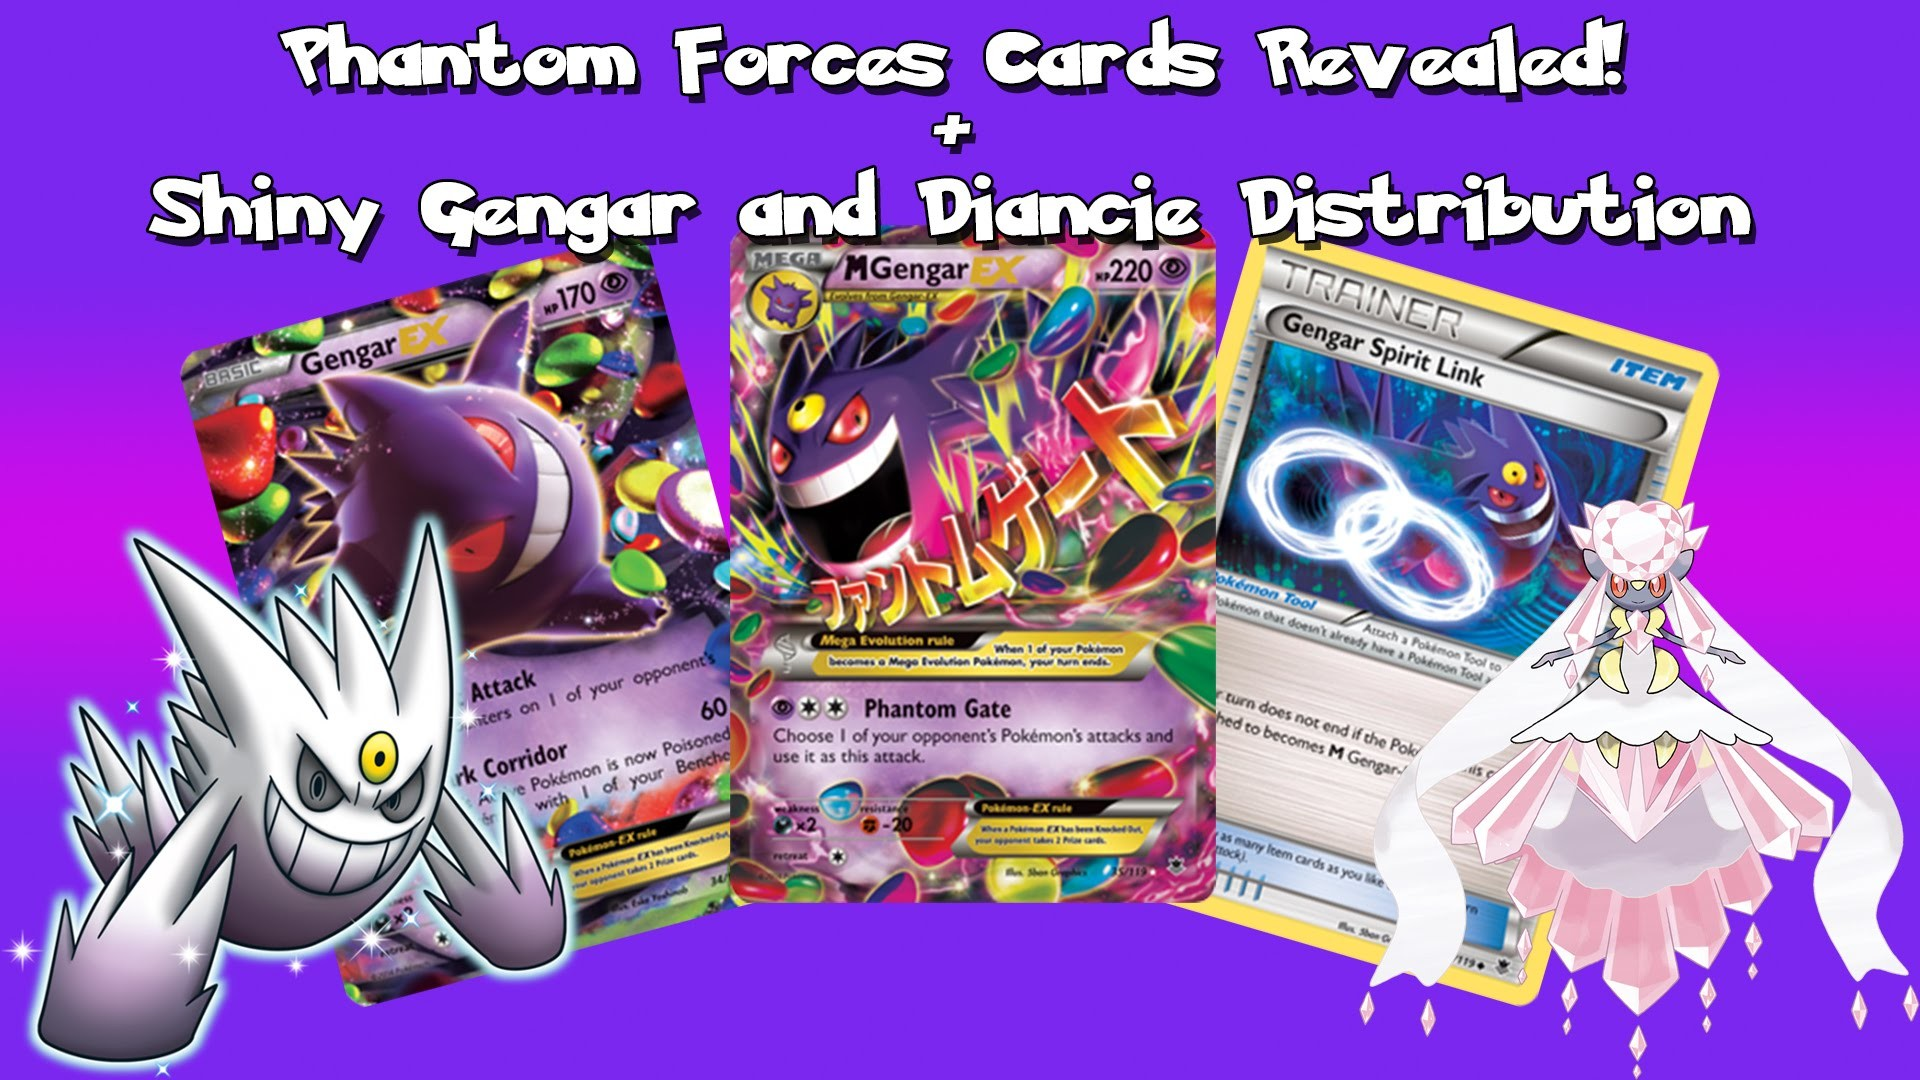 1920x1080 Pokémon News: English Phantom Forces Cards Revealed! + Shiny Gengar and  Dianice Distribution - YouTube